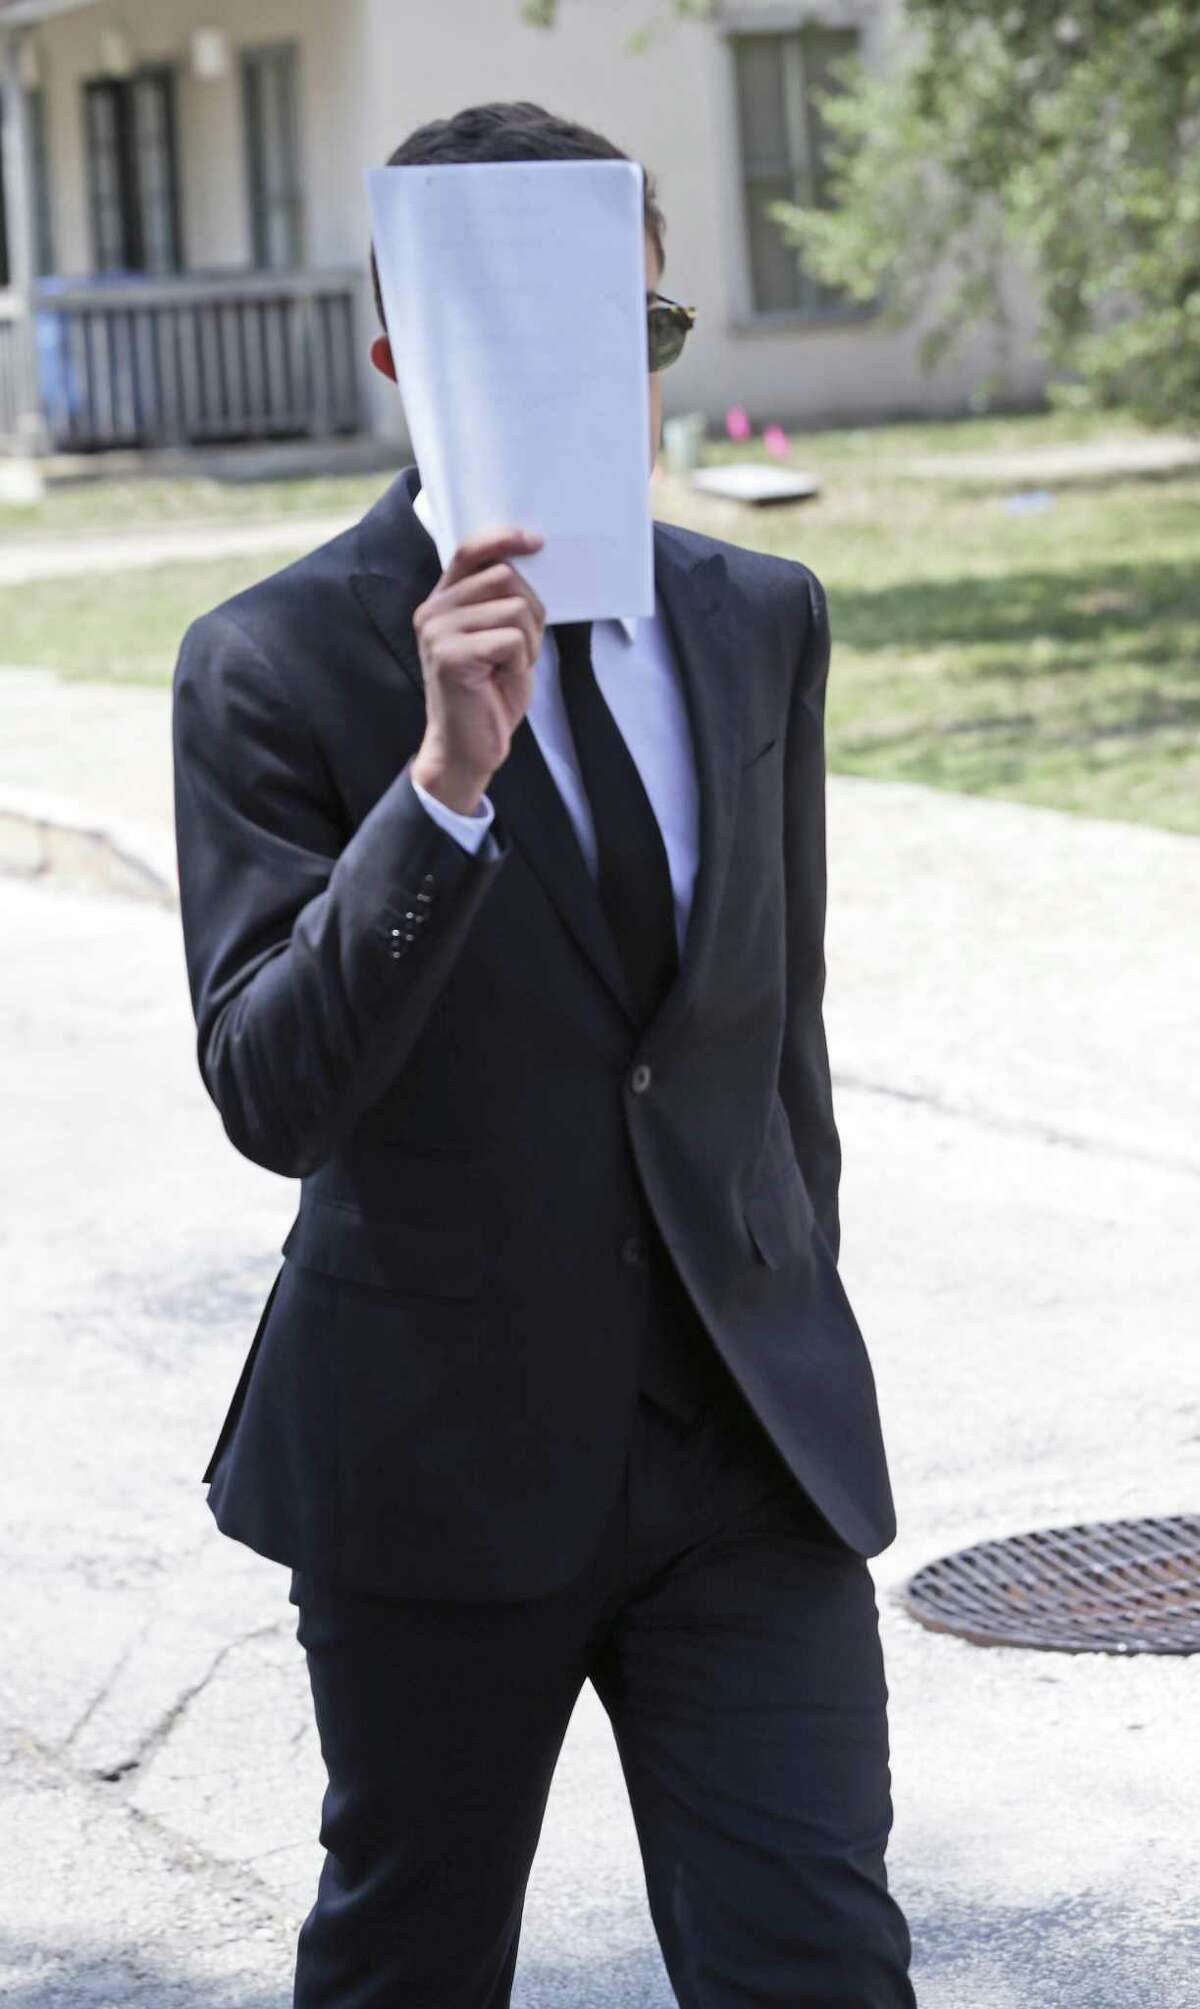 Andres Castaneda leaves the John H. Wood Federal Courthouse after appearing on July 25, 2018.